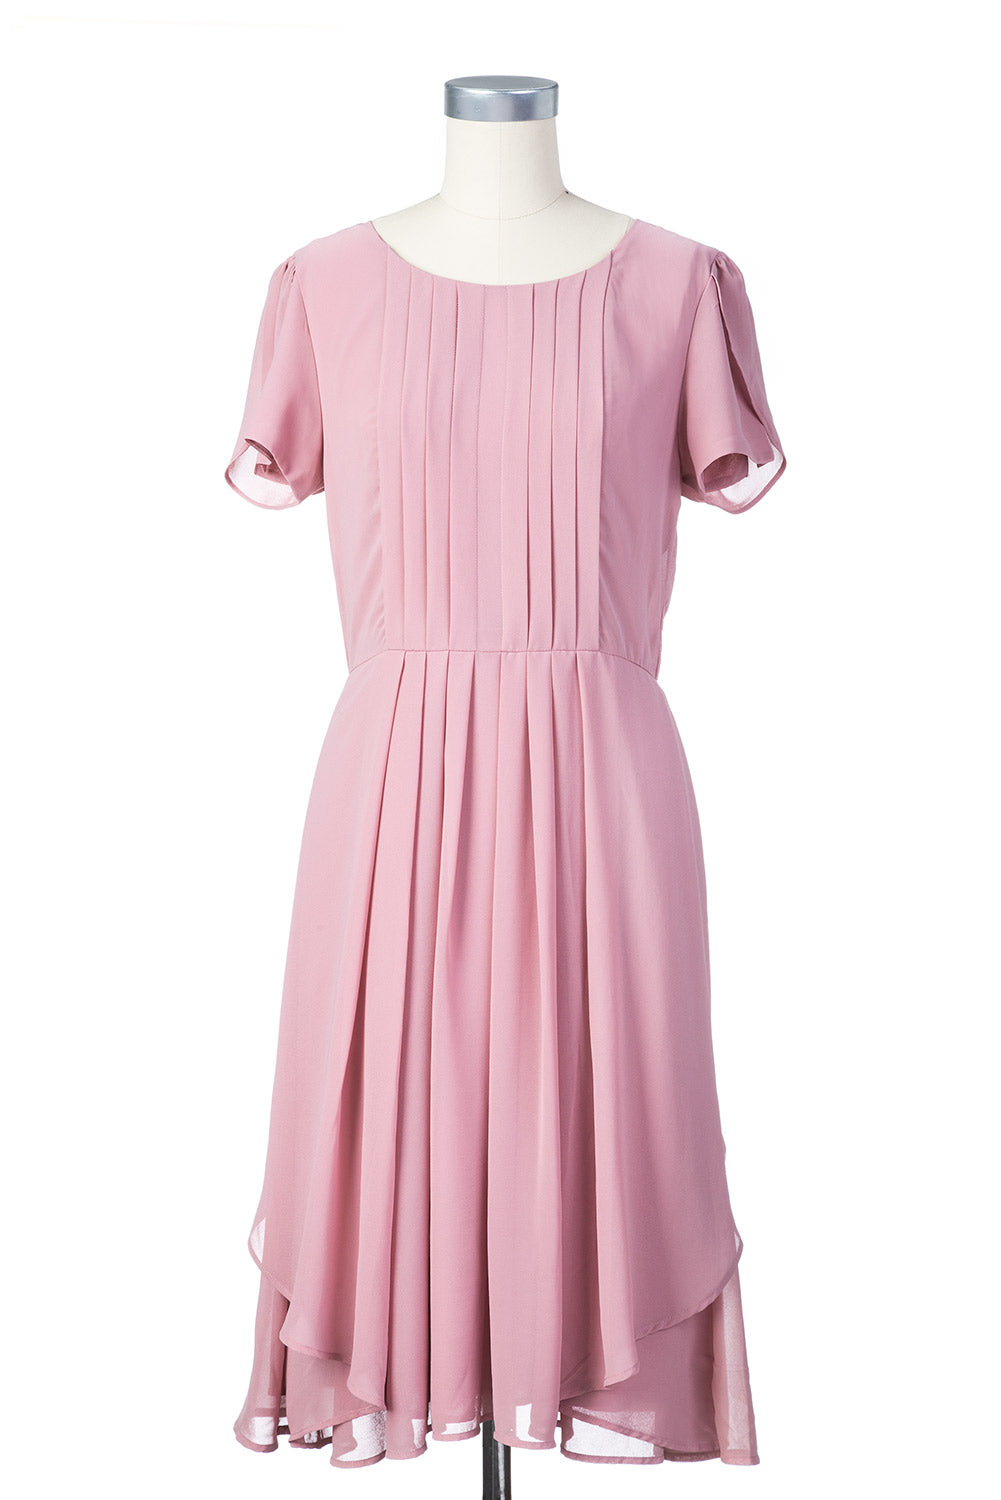 Type 2 Cassidy Rose Dress